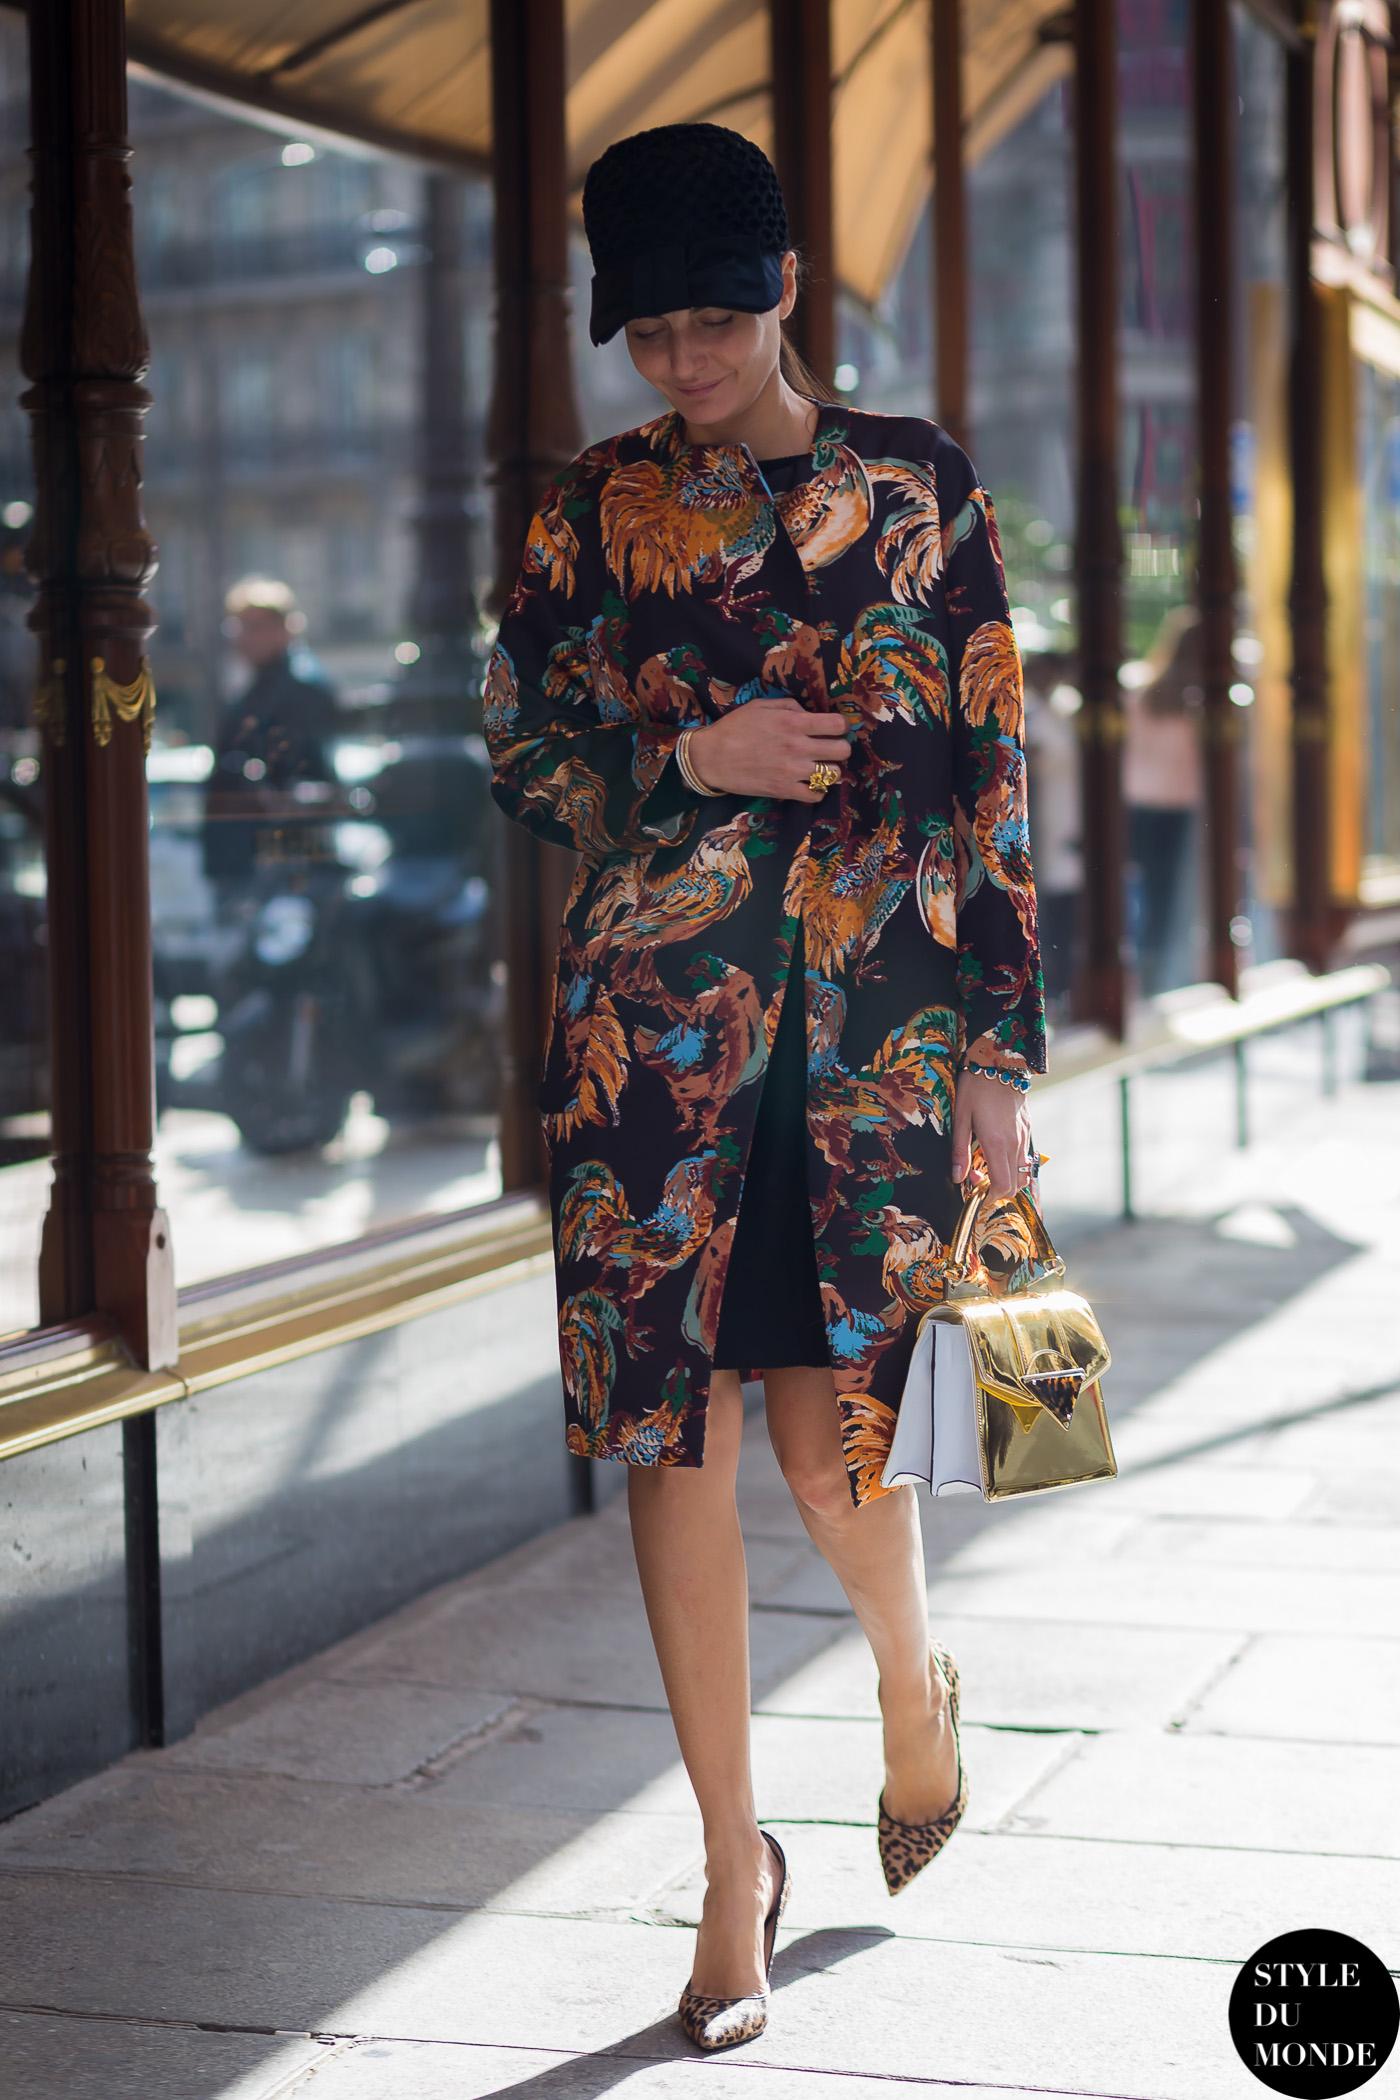 Paris Fashion Week Fw 2015 Street Style Giovanna Battaglia Style Du Monde Street Style